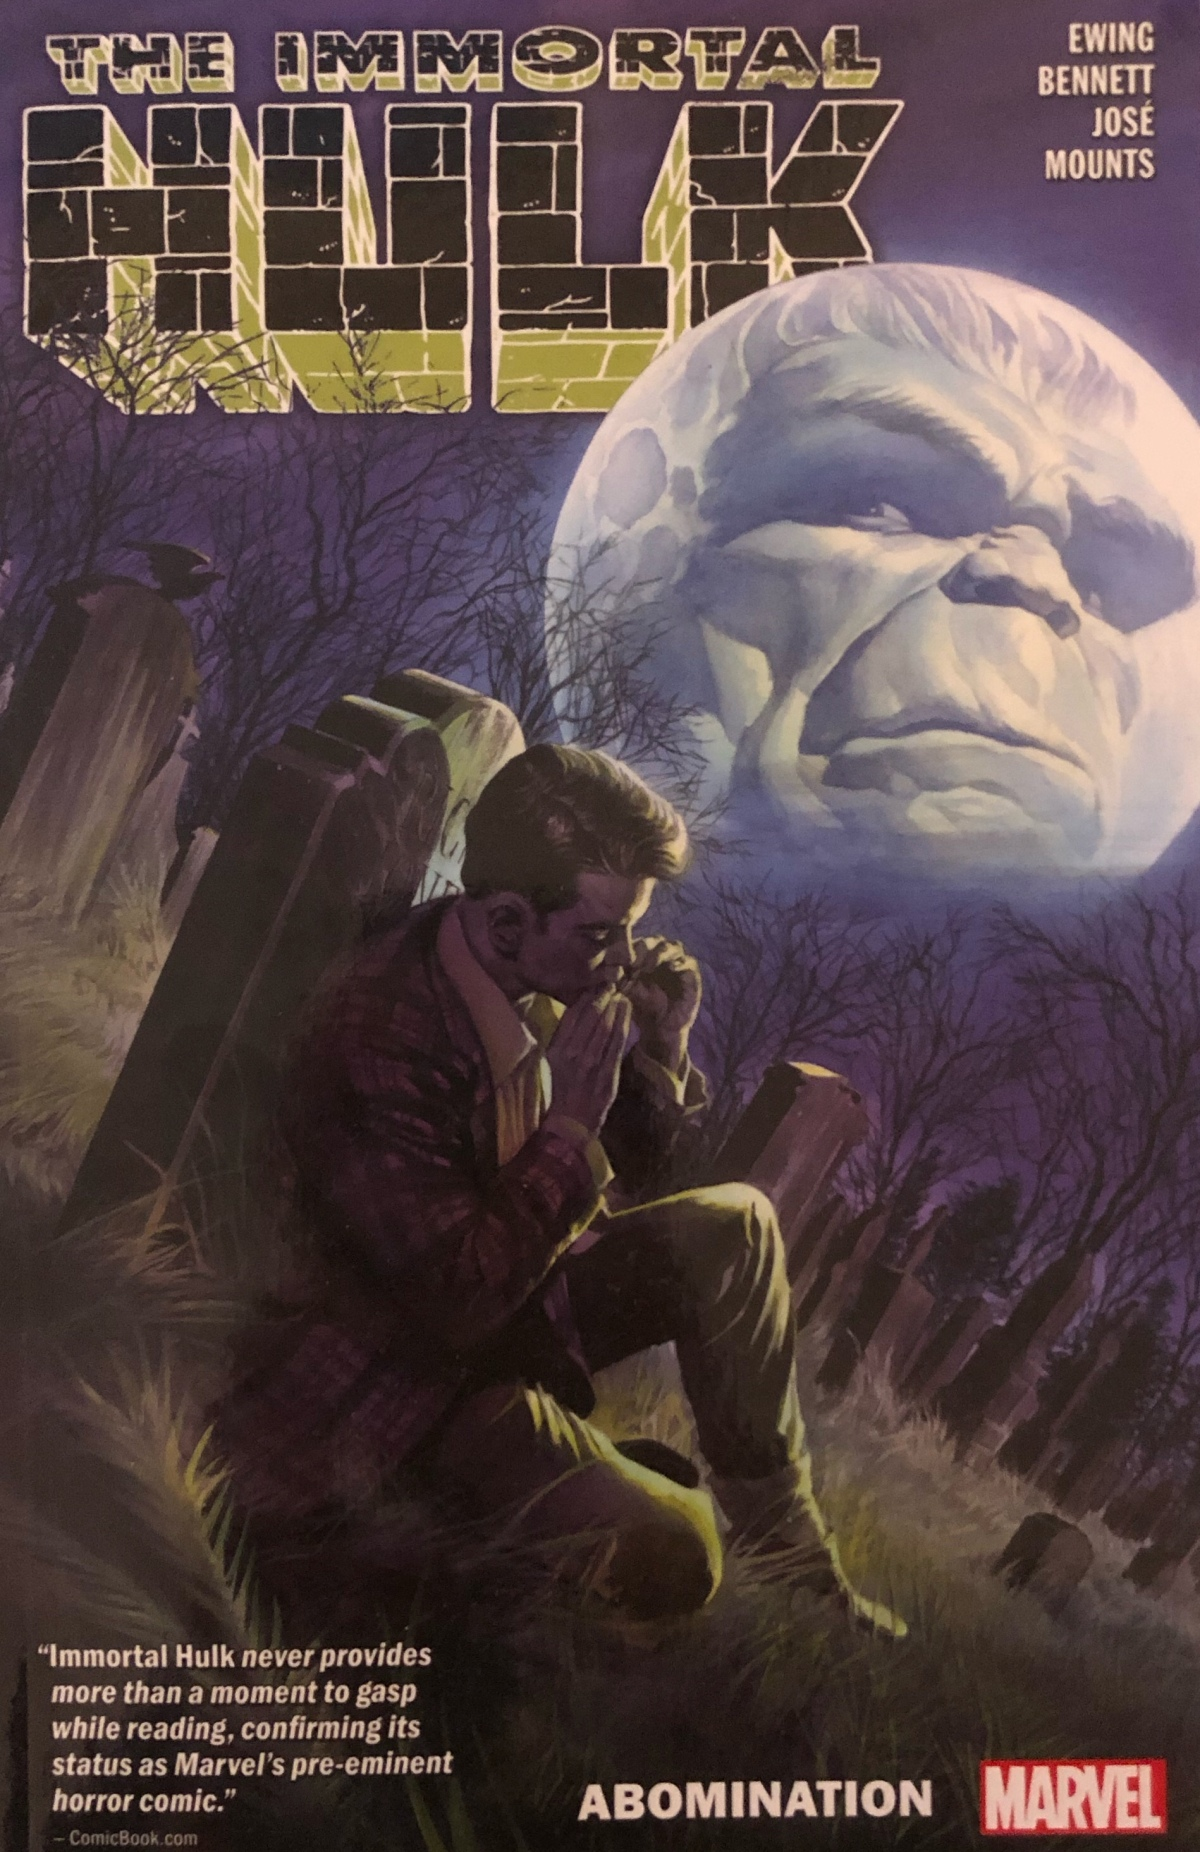 The Immortal Hulk Vol. 4: Abomination |Review